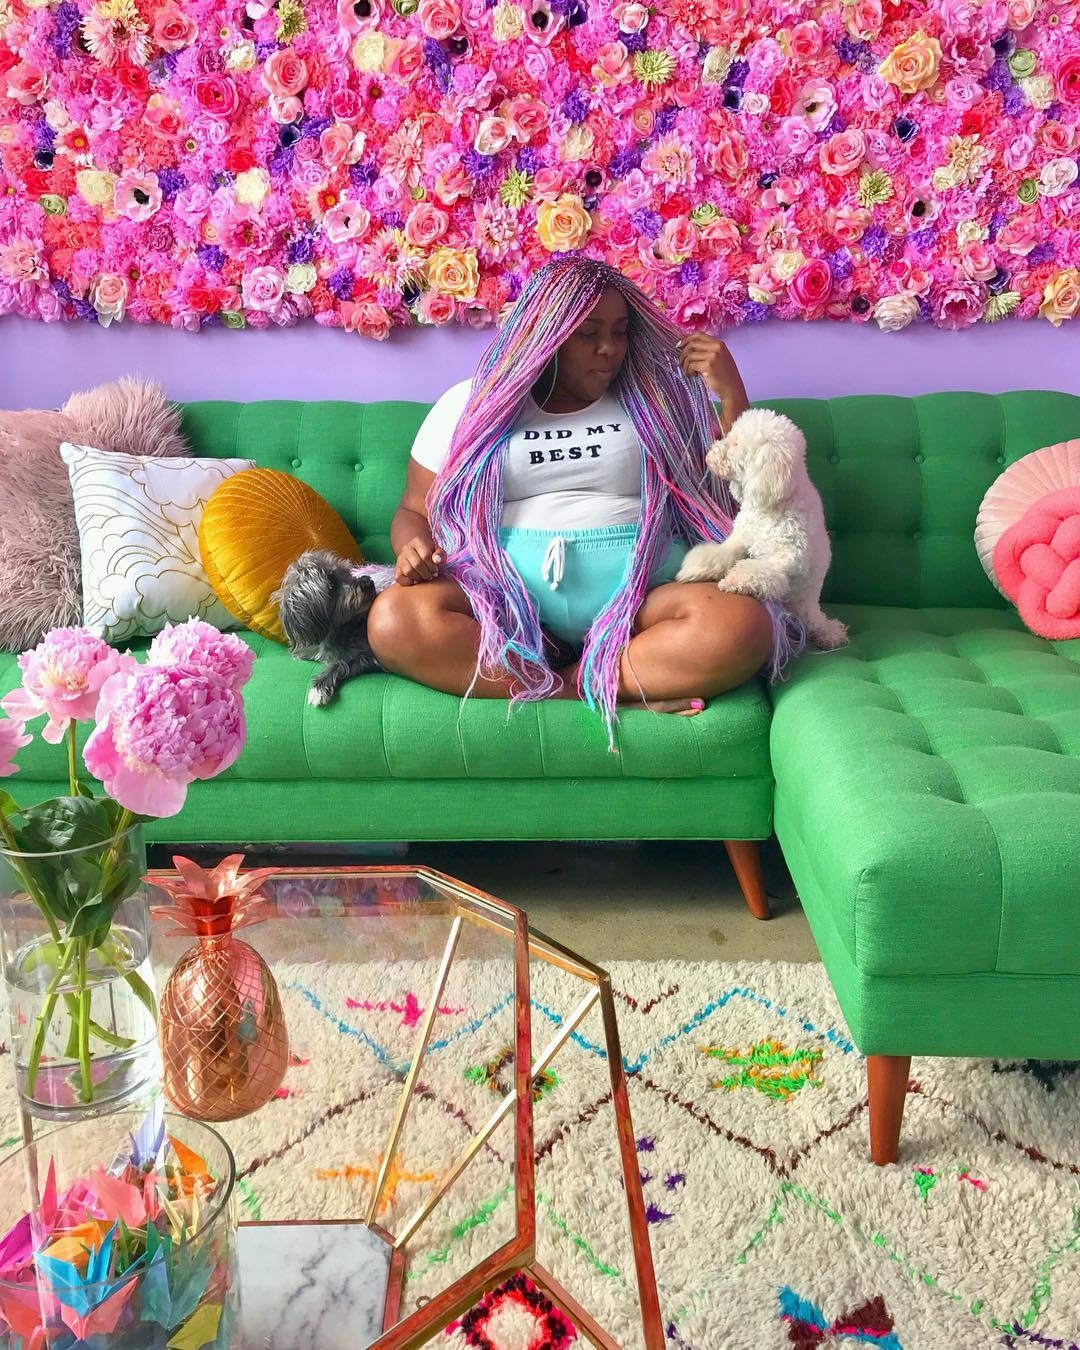 this babe's colorful lifestyle and apartment makes unicorns